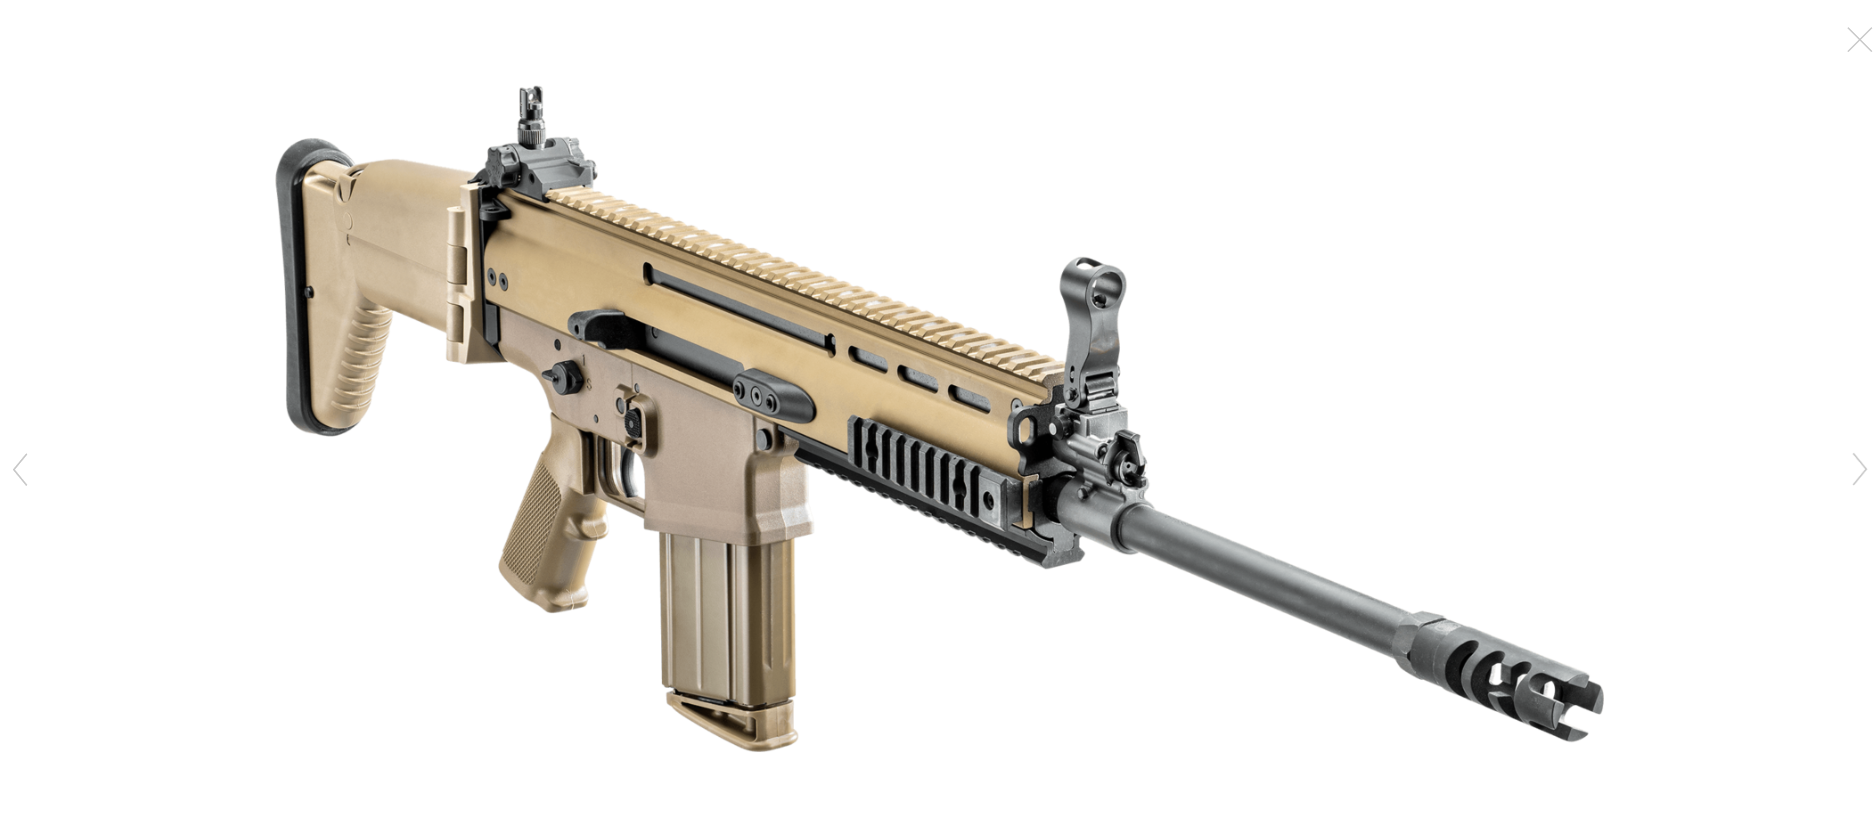 Three D weapons - FN SCAR-H